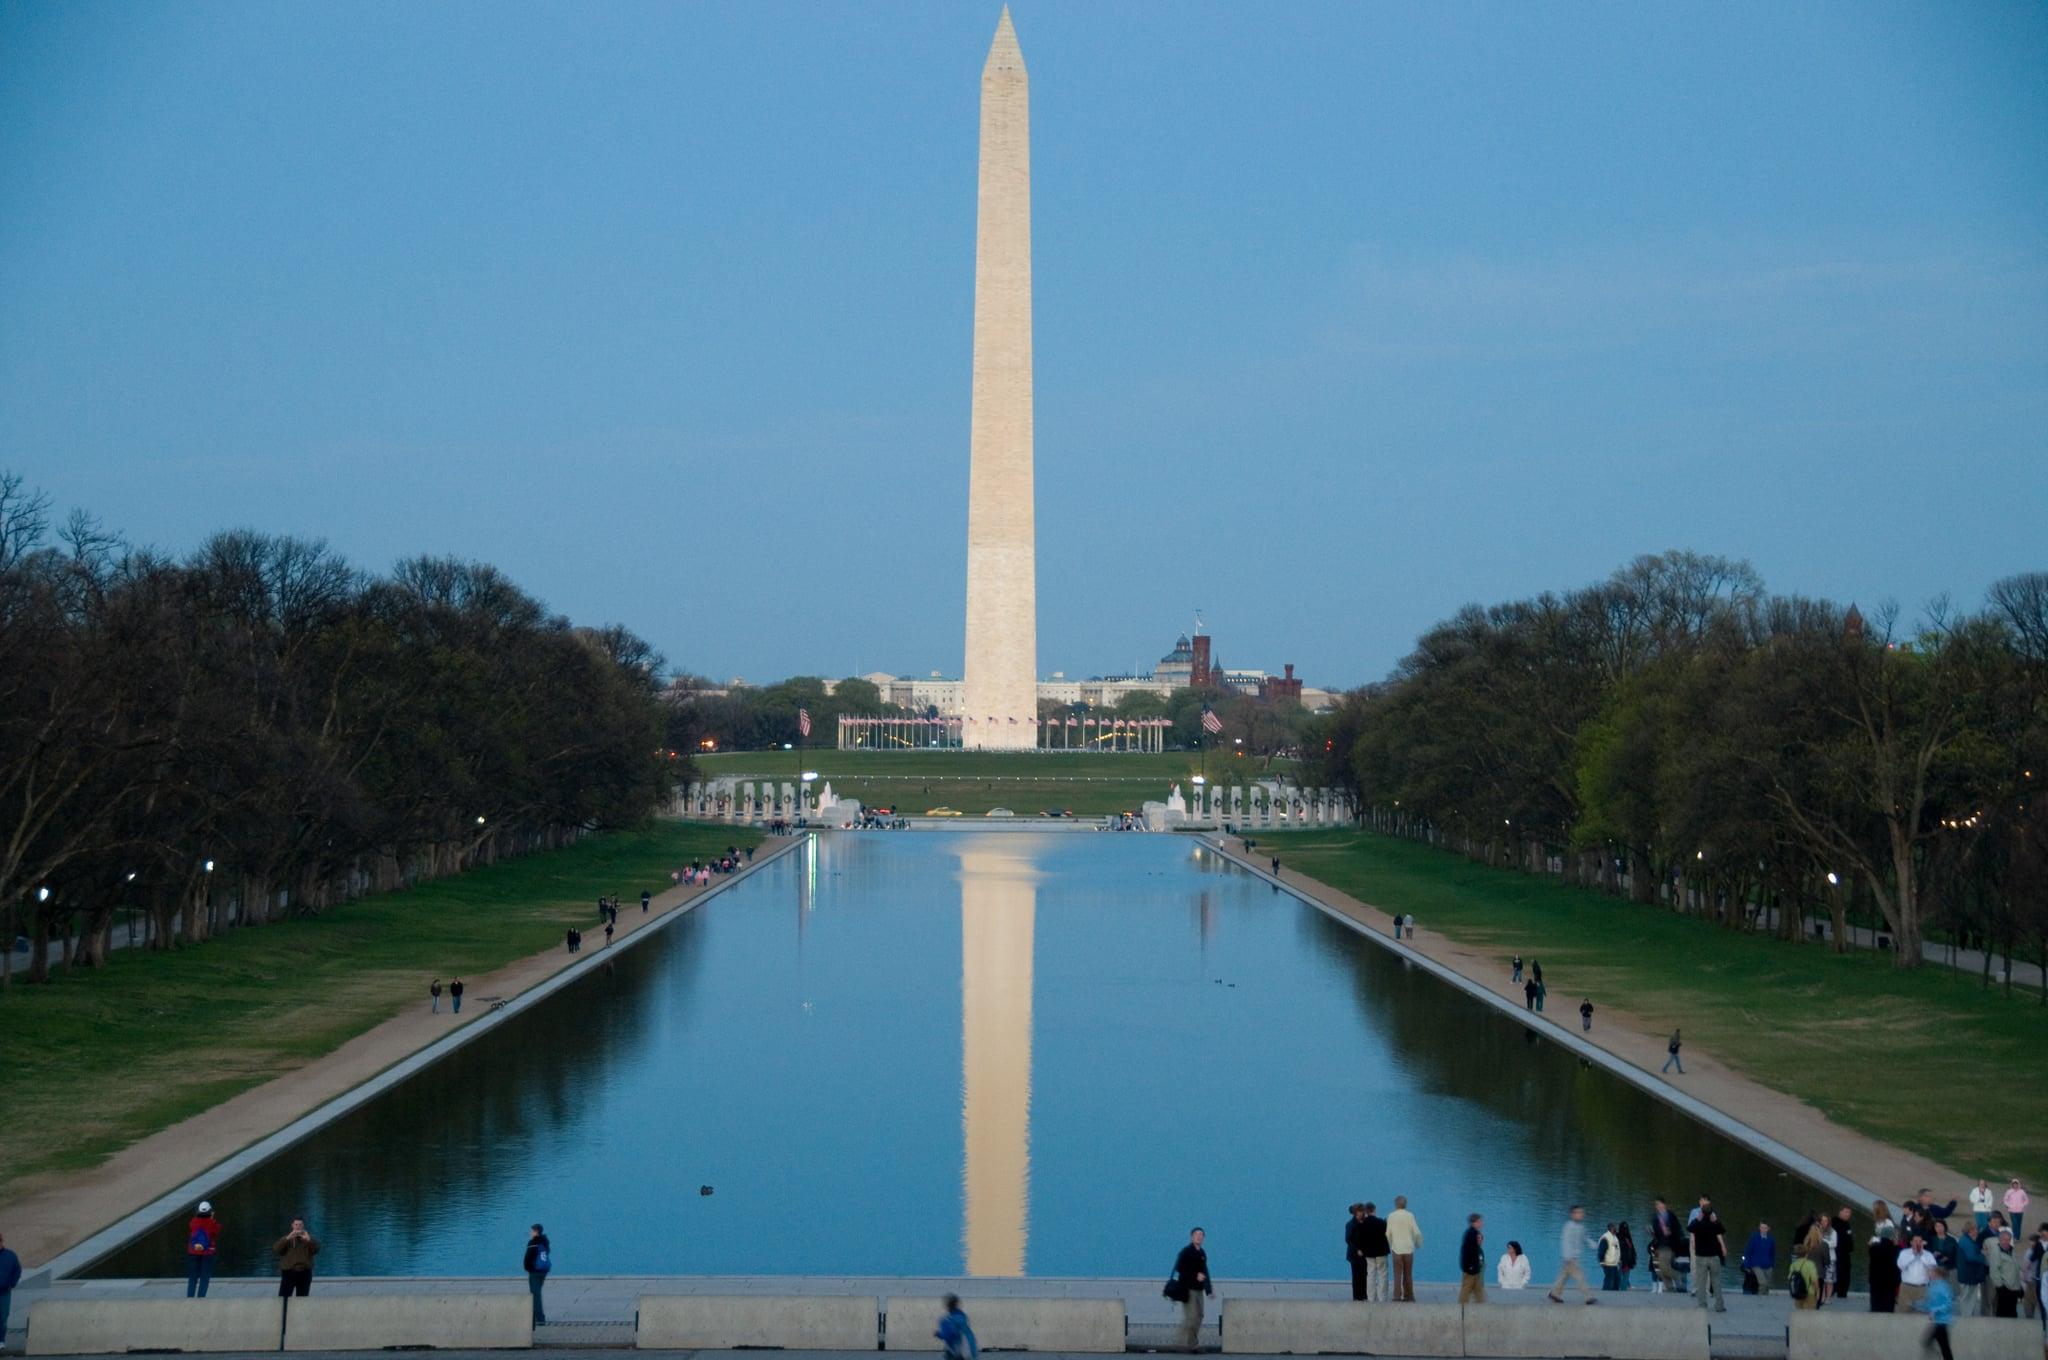 Lincoln Memorial Reflecting Pool | The Top 10 Landmarks in the US | POPSUGAR Smart Living Photo 2